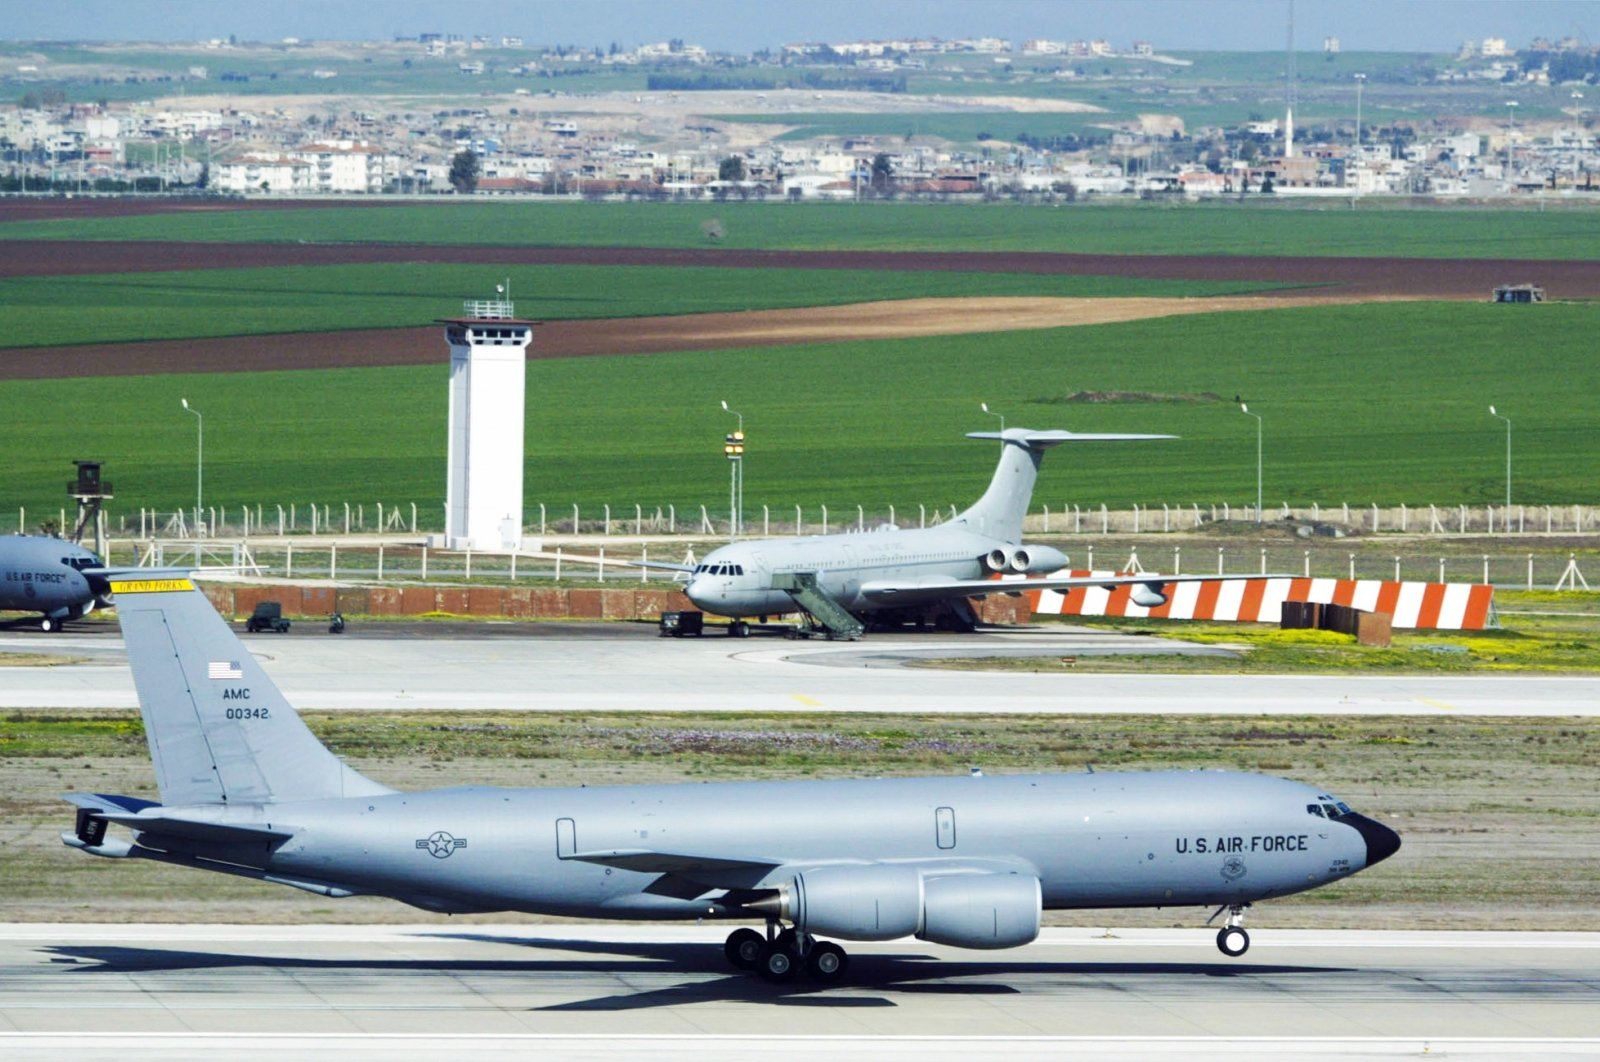 A KC-135 refueling jet slides in front of a control tower during takeoff at Incirlik Air Force Base in Turkey, March 7, 2003. (Getty Images)